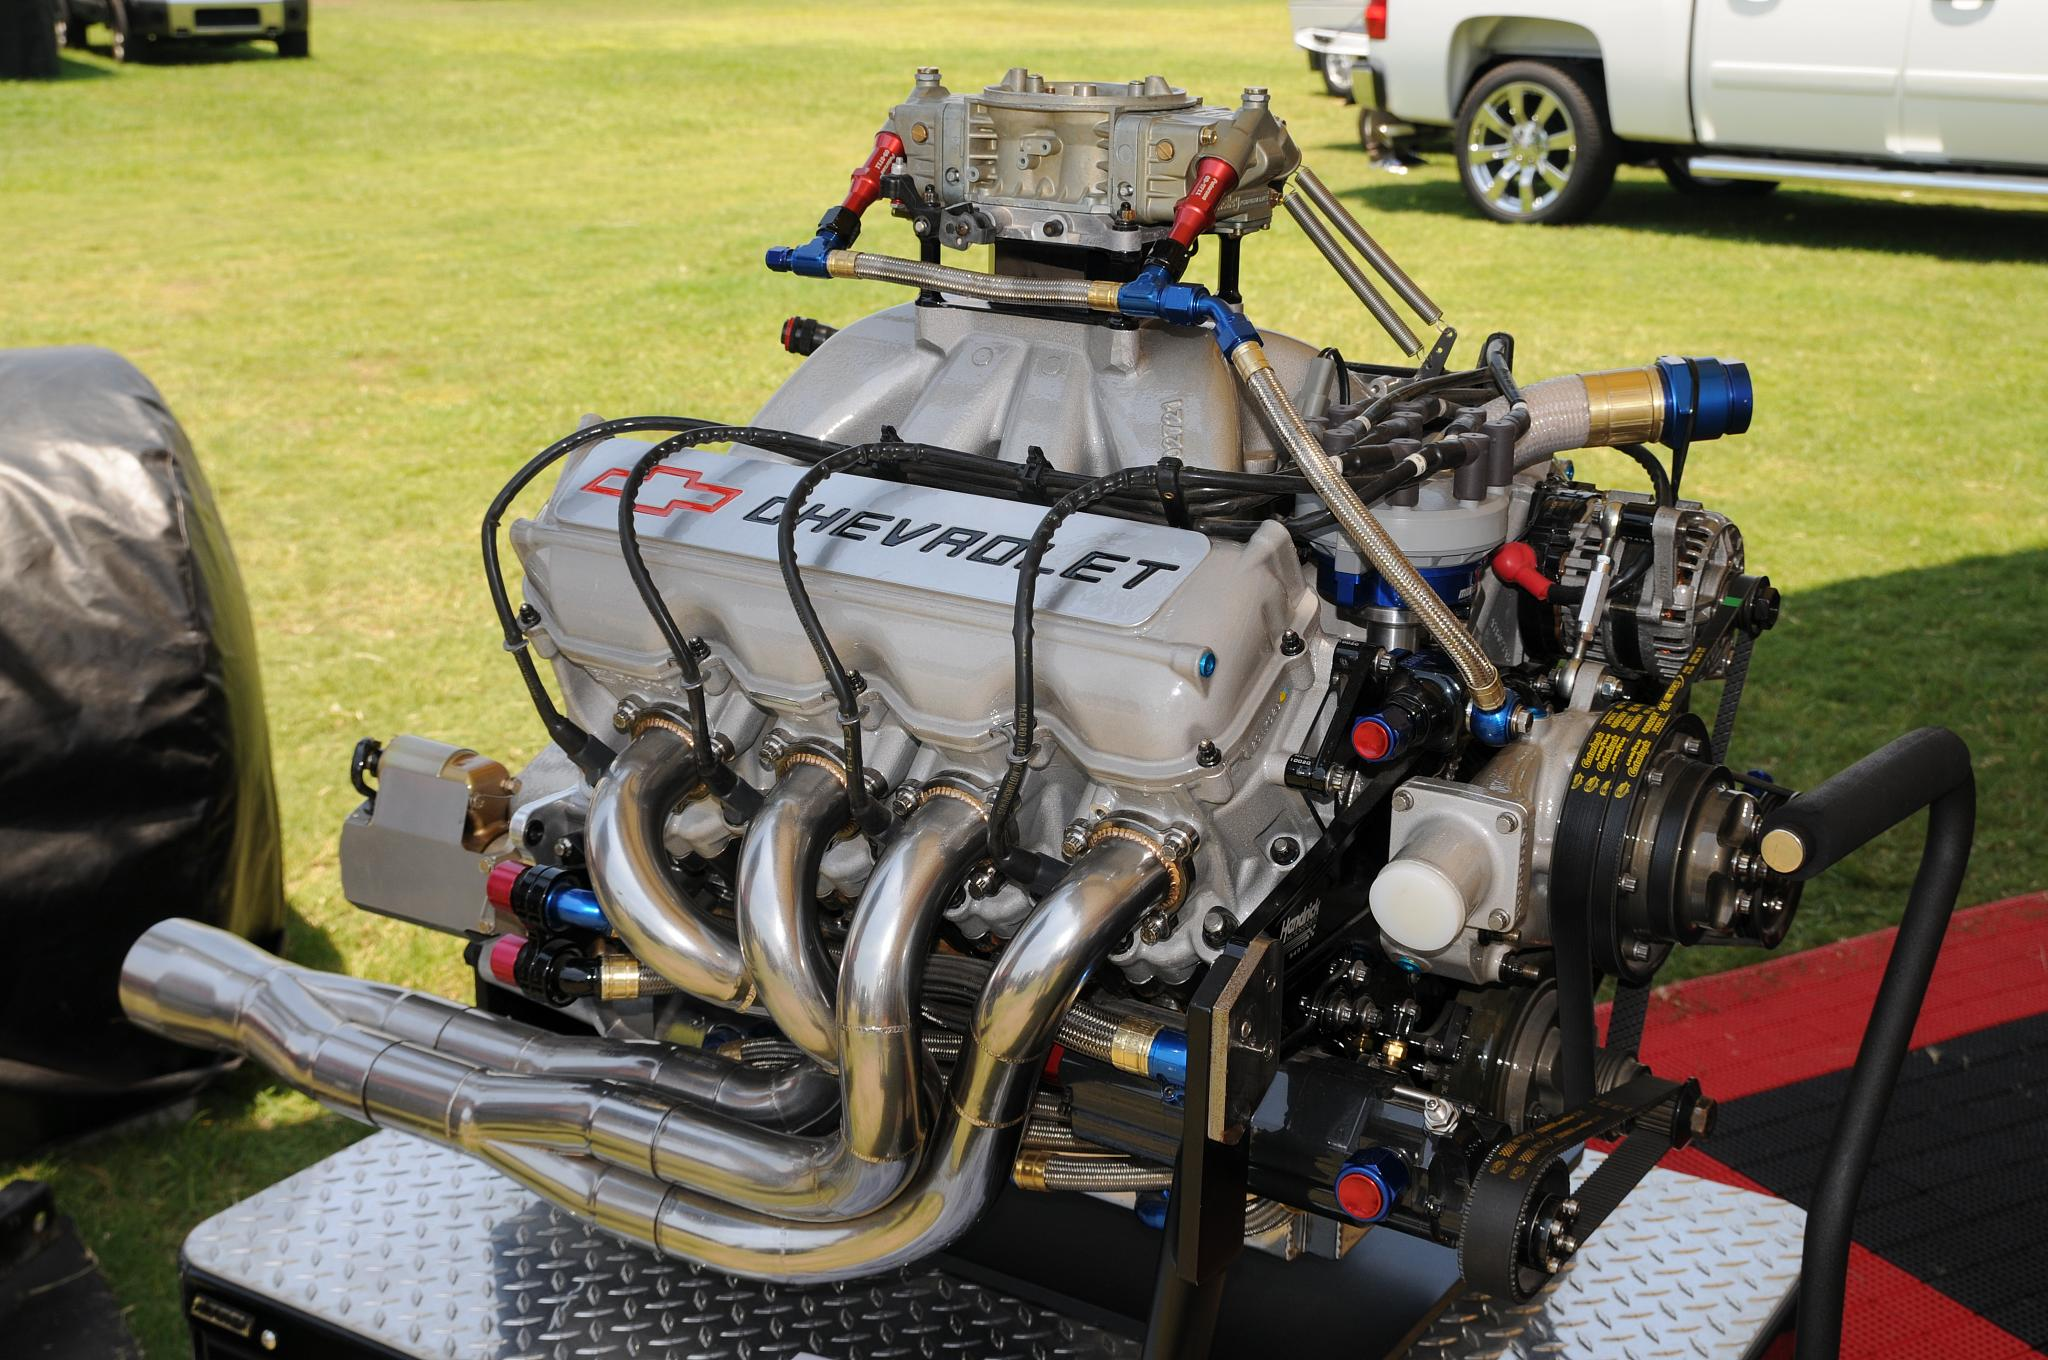 Nicks Na Turbo Build 73216 in addition Modified Bajaj Pulsar 200ns furthermore Dickforbrook furthermore Isuzu D Max Fury Double Cab Pick Up Red 11228 moreover L Cleary M2 COLOR. on modified stock car racing